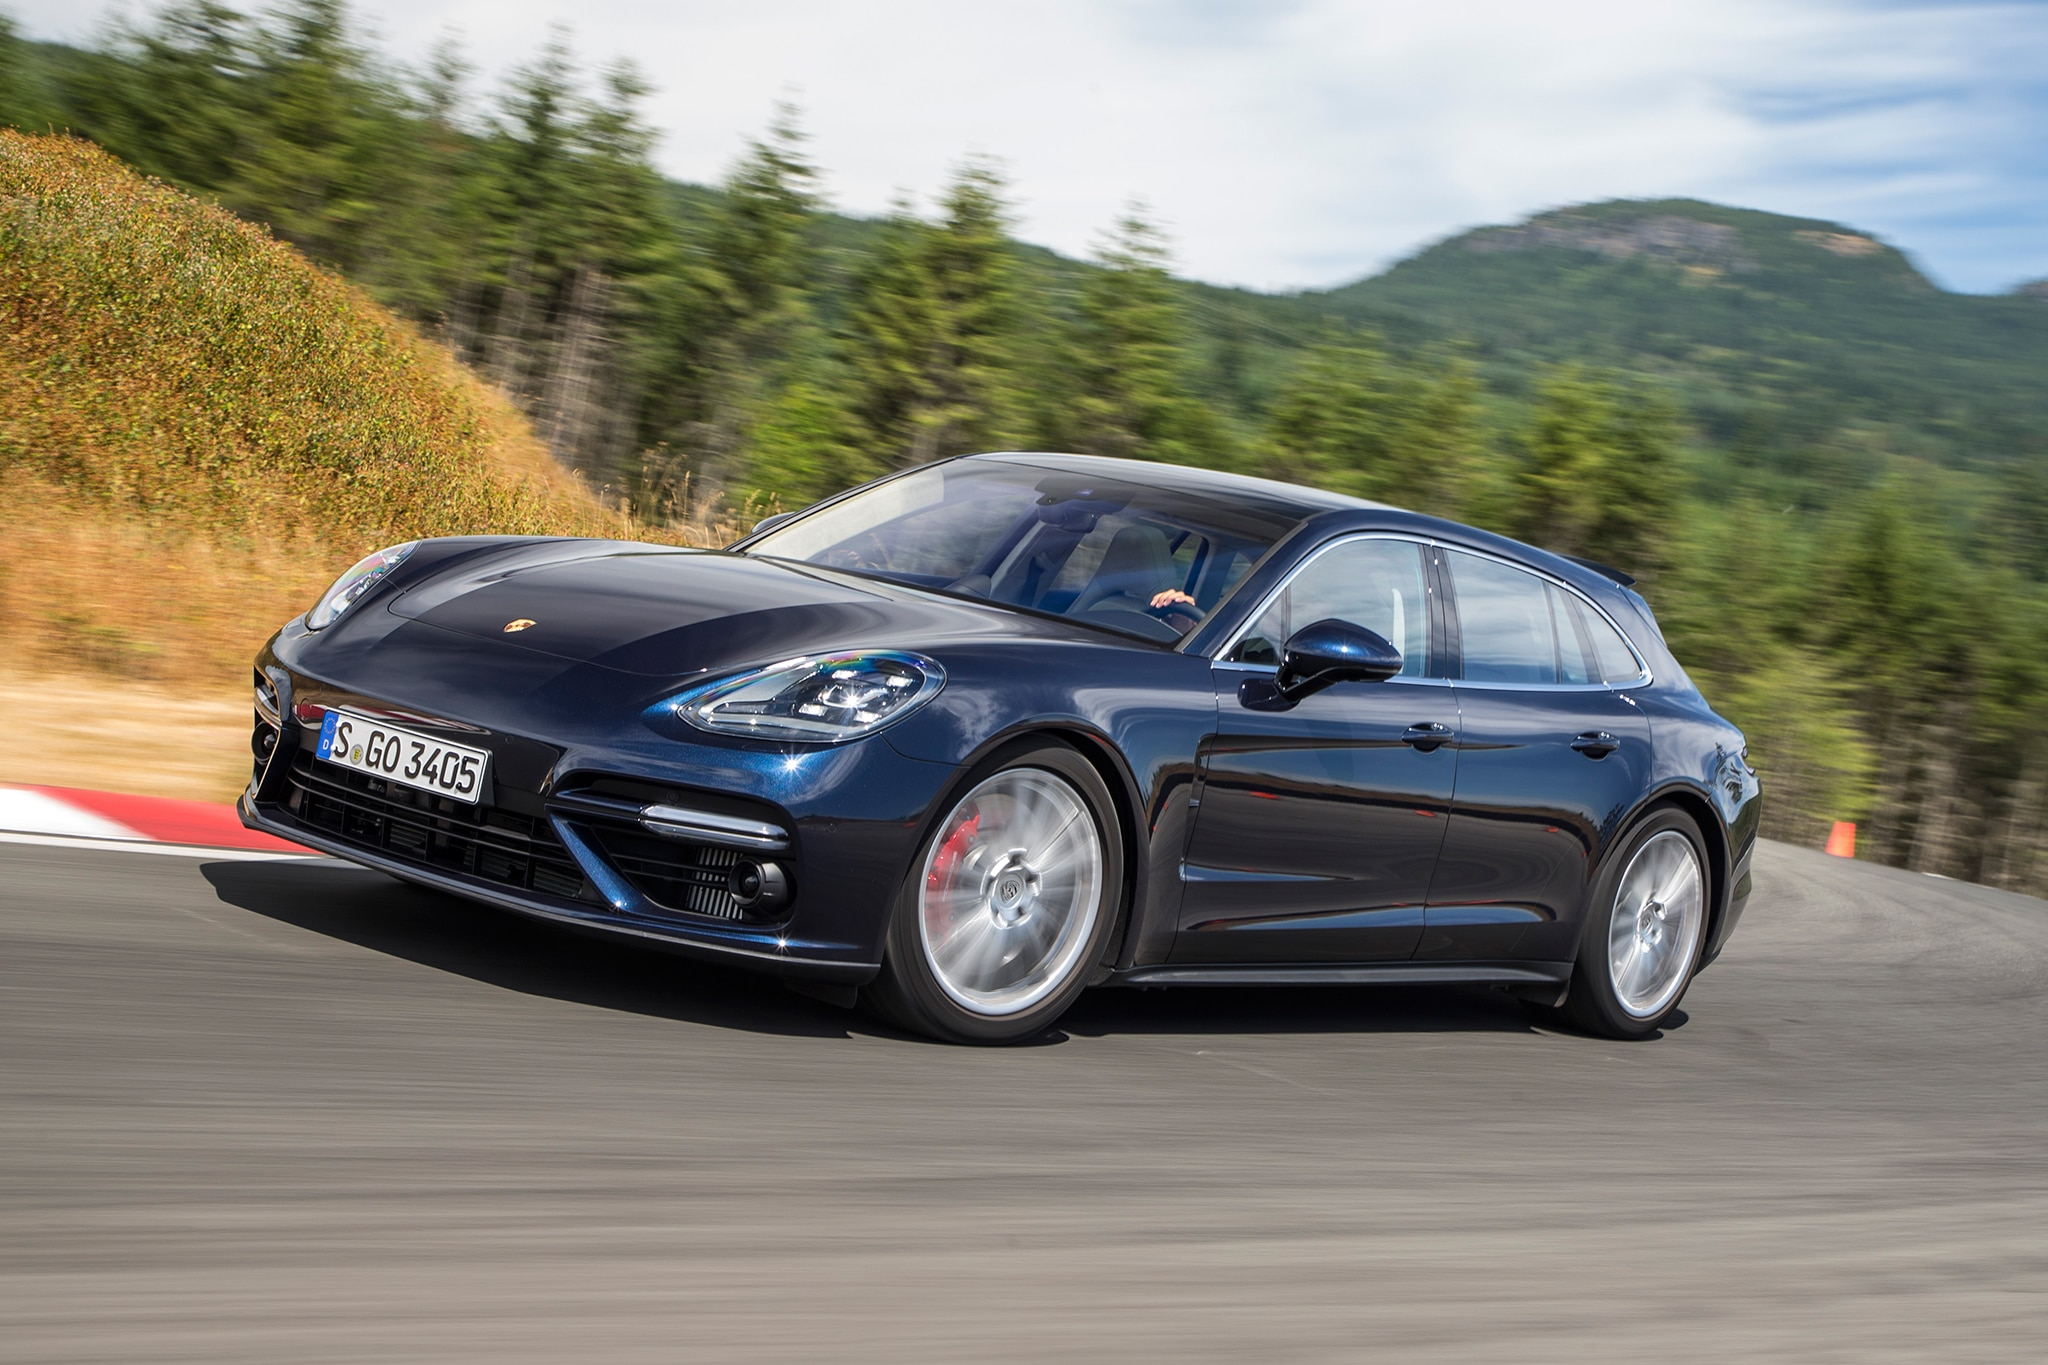 2018 Porsche Panamera Sport Turismo Front Three Quarter In Motion 01